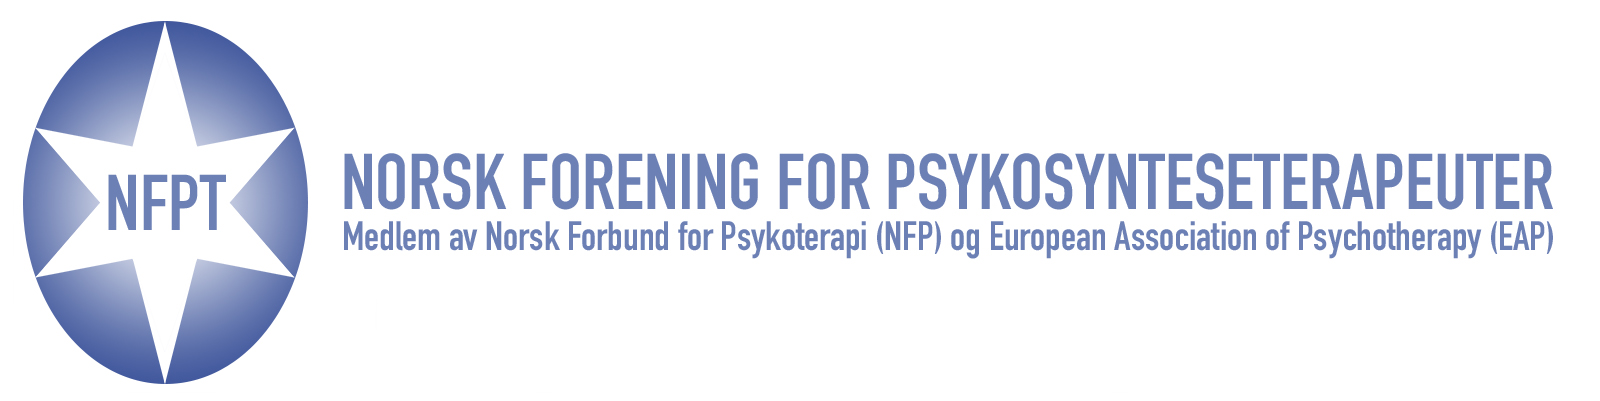 Norsk Forening for Psykosynteseterapeuter